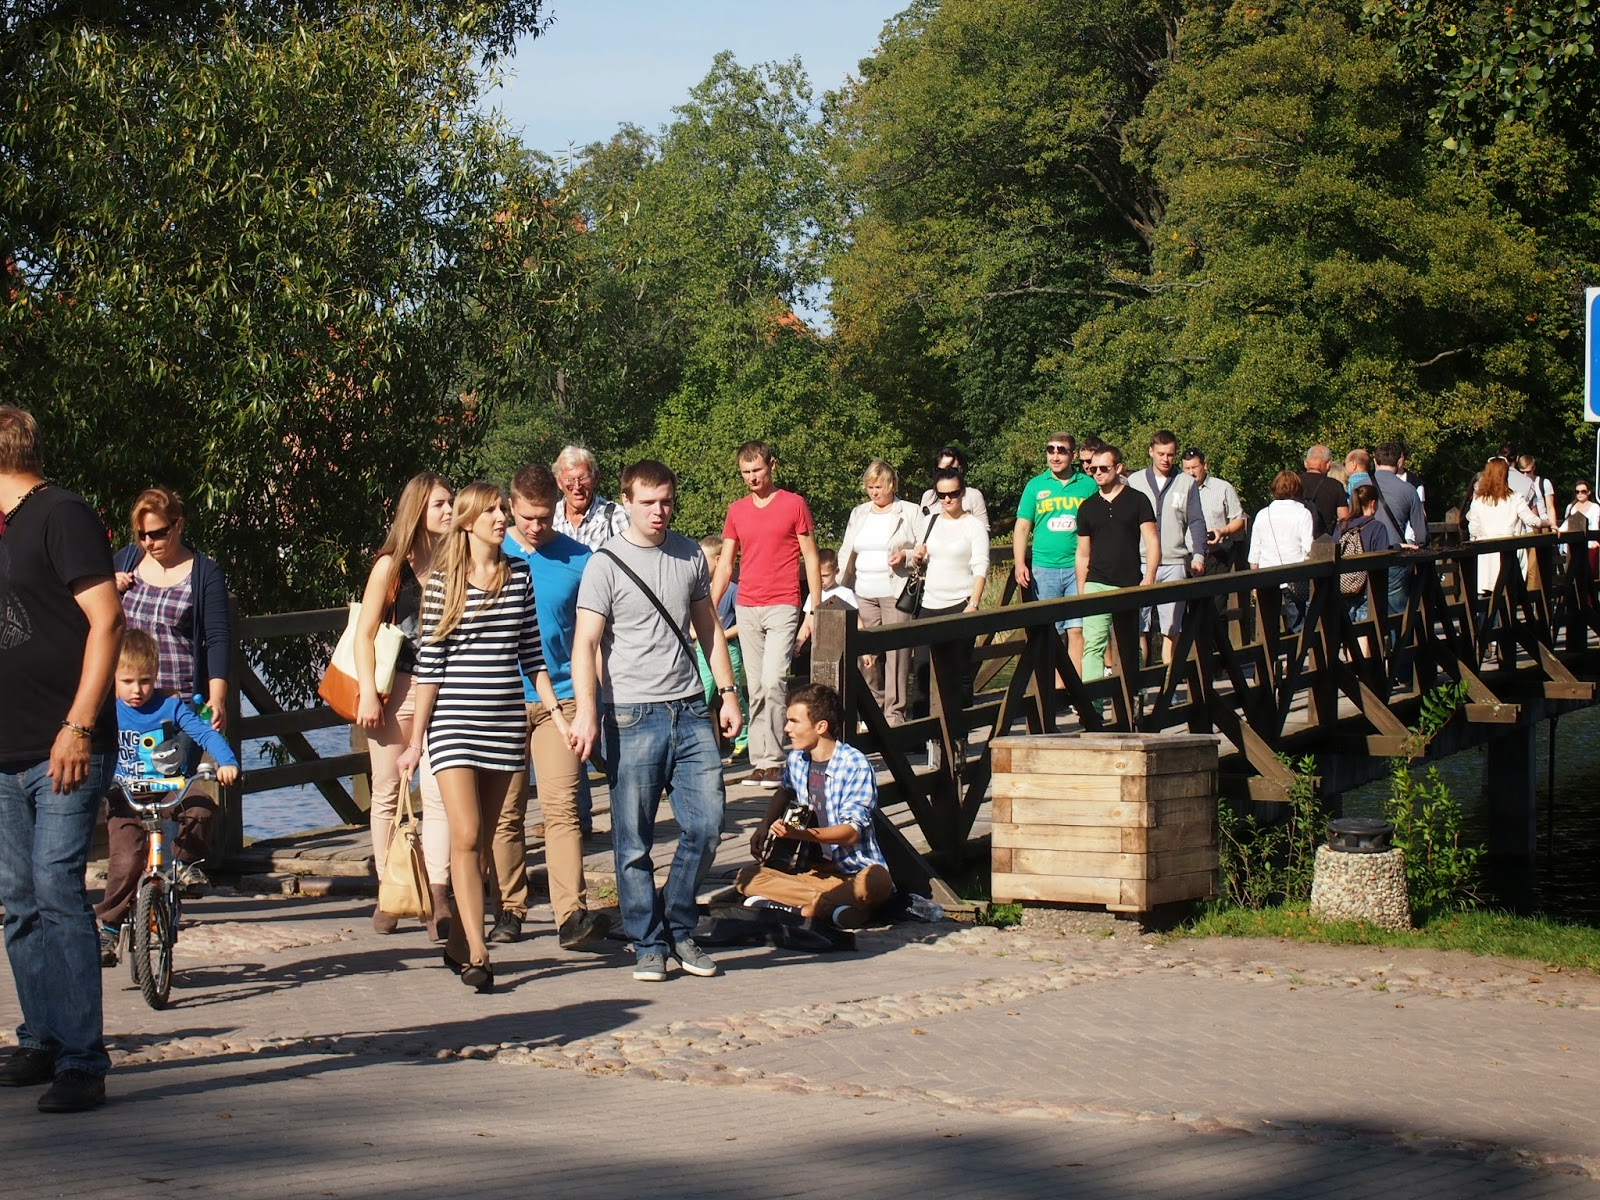 the crowds of people in Trakai near the castle